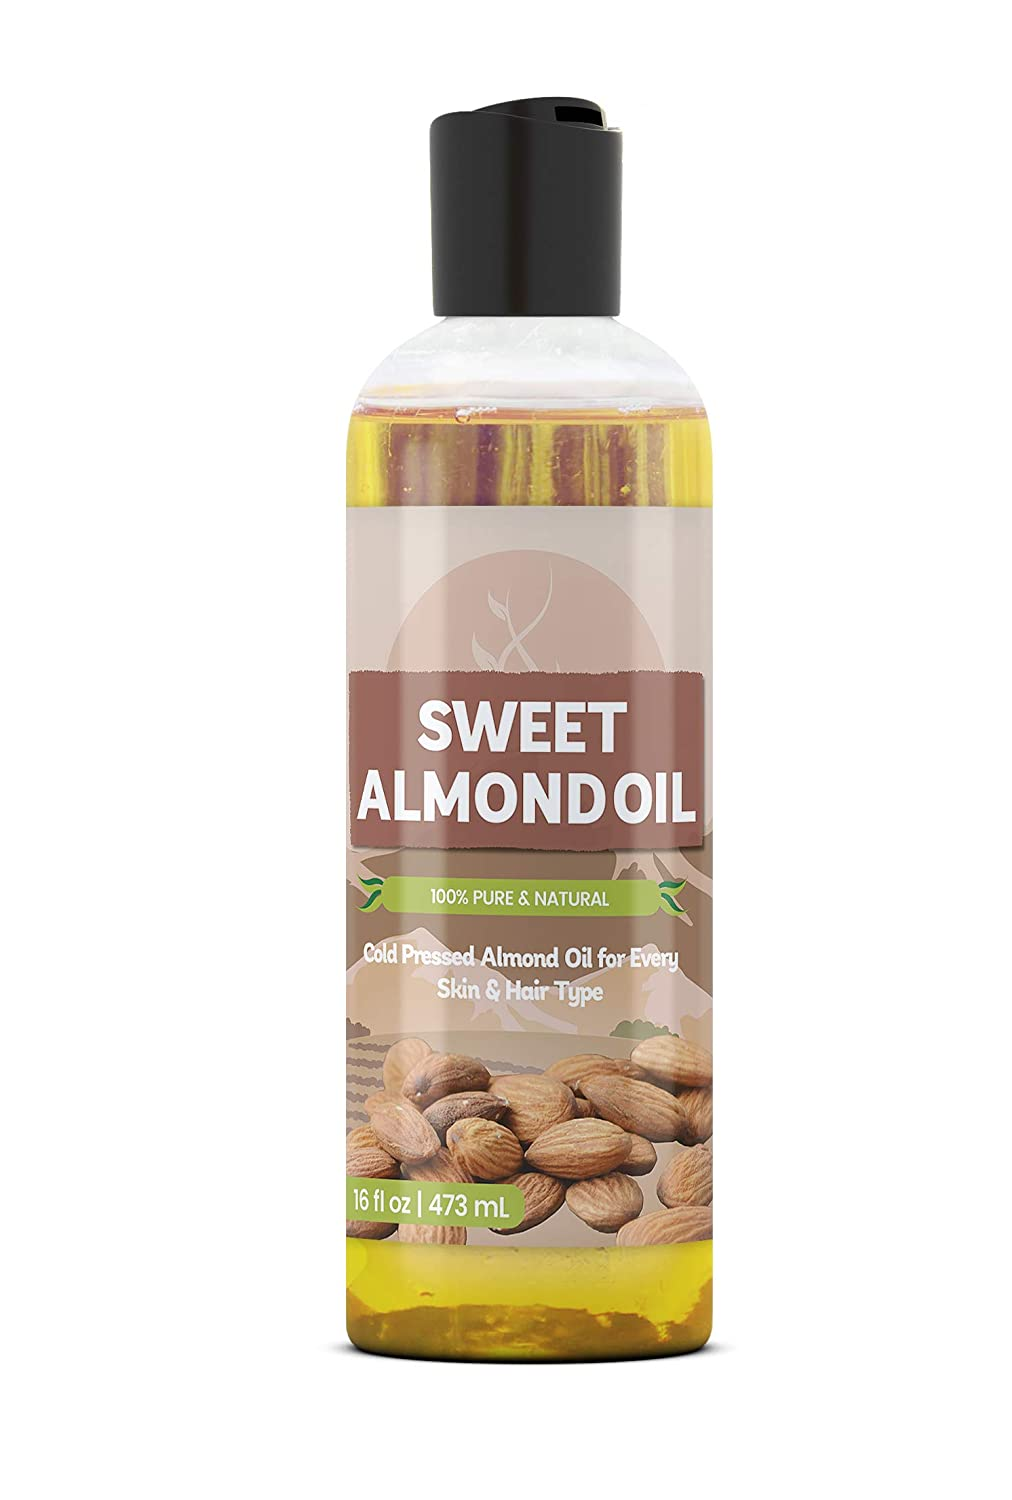 Sweet Almond Oil (16 fl oz) by Pure Organic Ingredients, Improve Overall Skin Complexion, For Fine Lines & Wrinkles, Relieve Dry & Cracked Skin, Healthier Hair & Nails, For All Skin Types